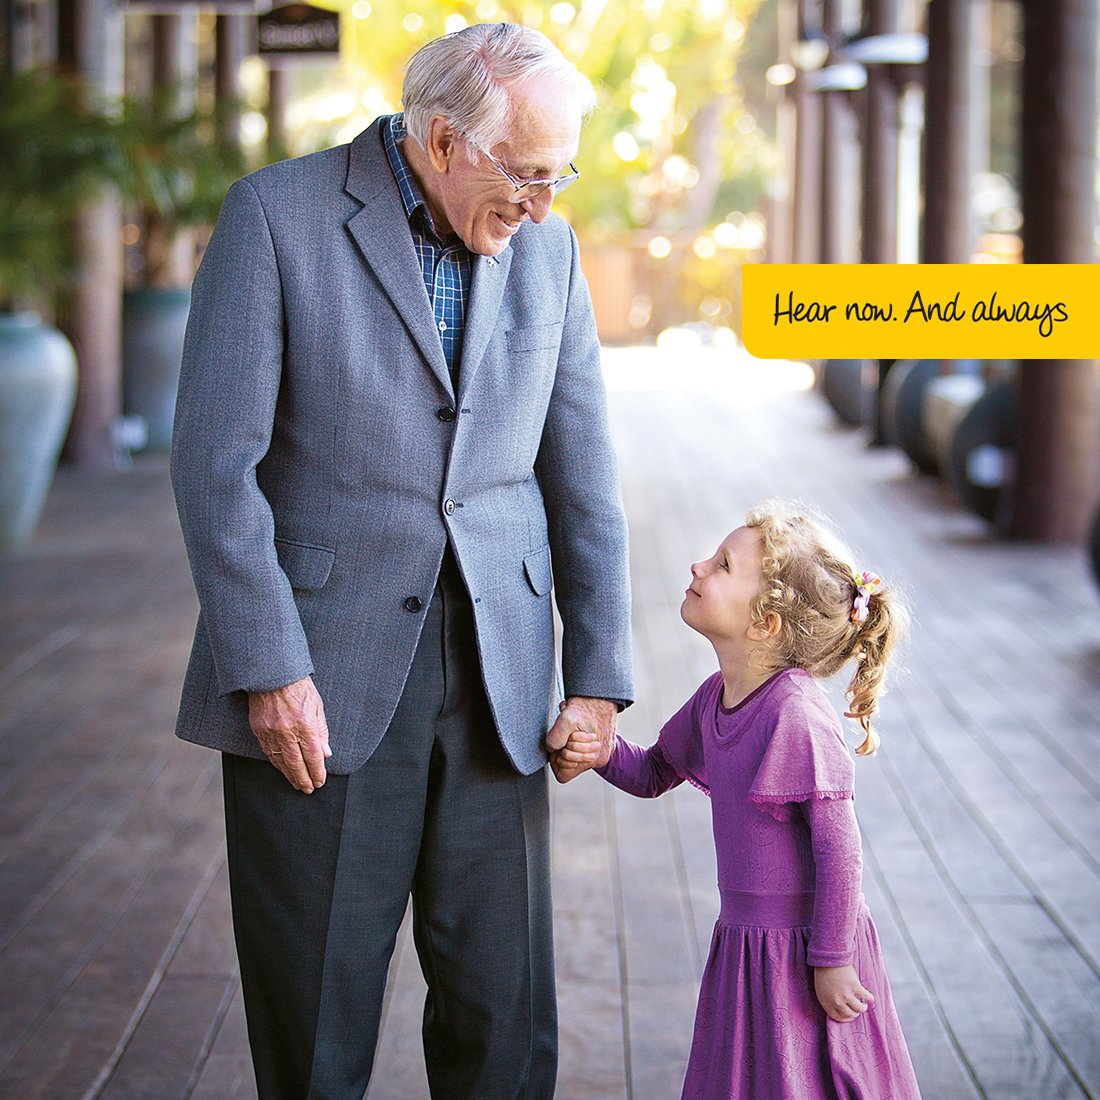 From all of us at #Cochlear Happy 84th Birthday to Prof Graeme Clark today! #HearNowAndAlways